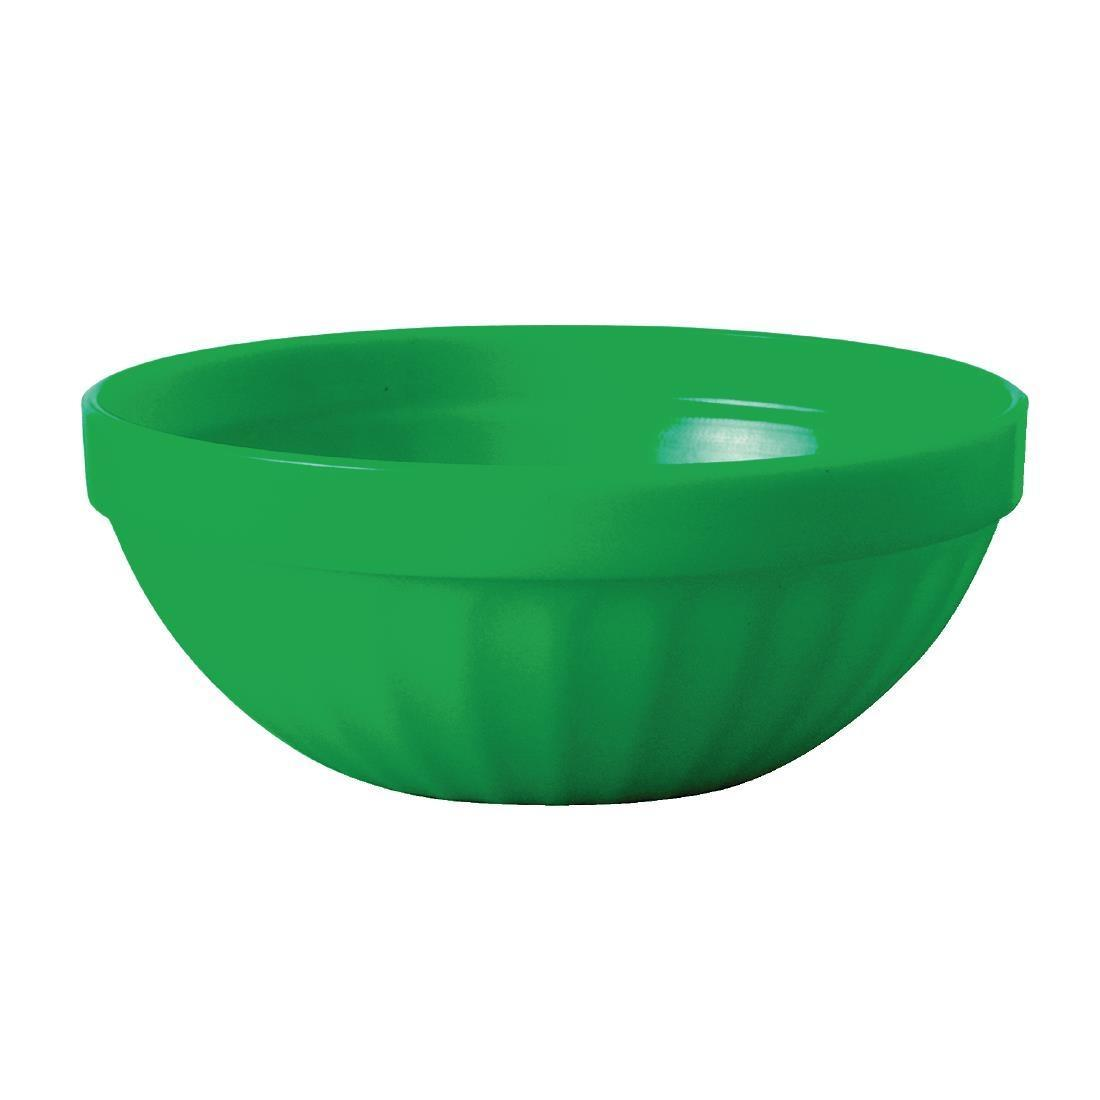 Kristallon Polycarbonate Bowls Green 102mm - Case 12 - CE275